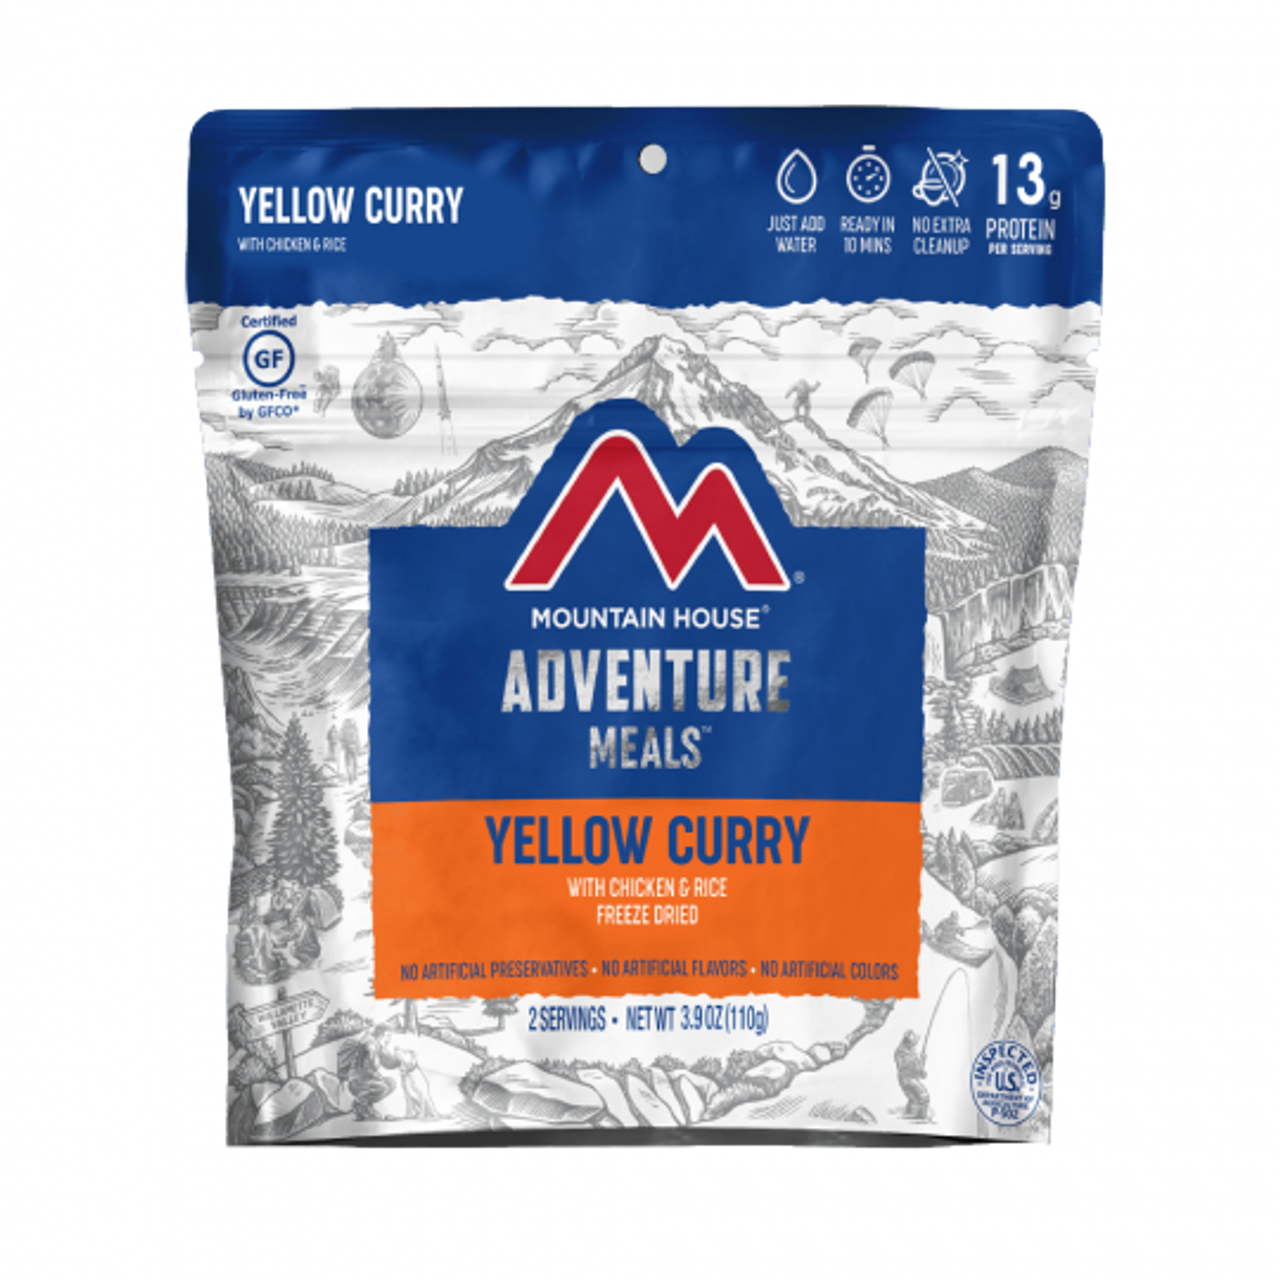 Mountain House Yellow Curry with Chicken & Rice Pouch (Gluten Free)